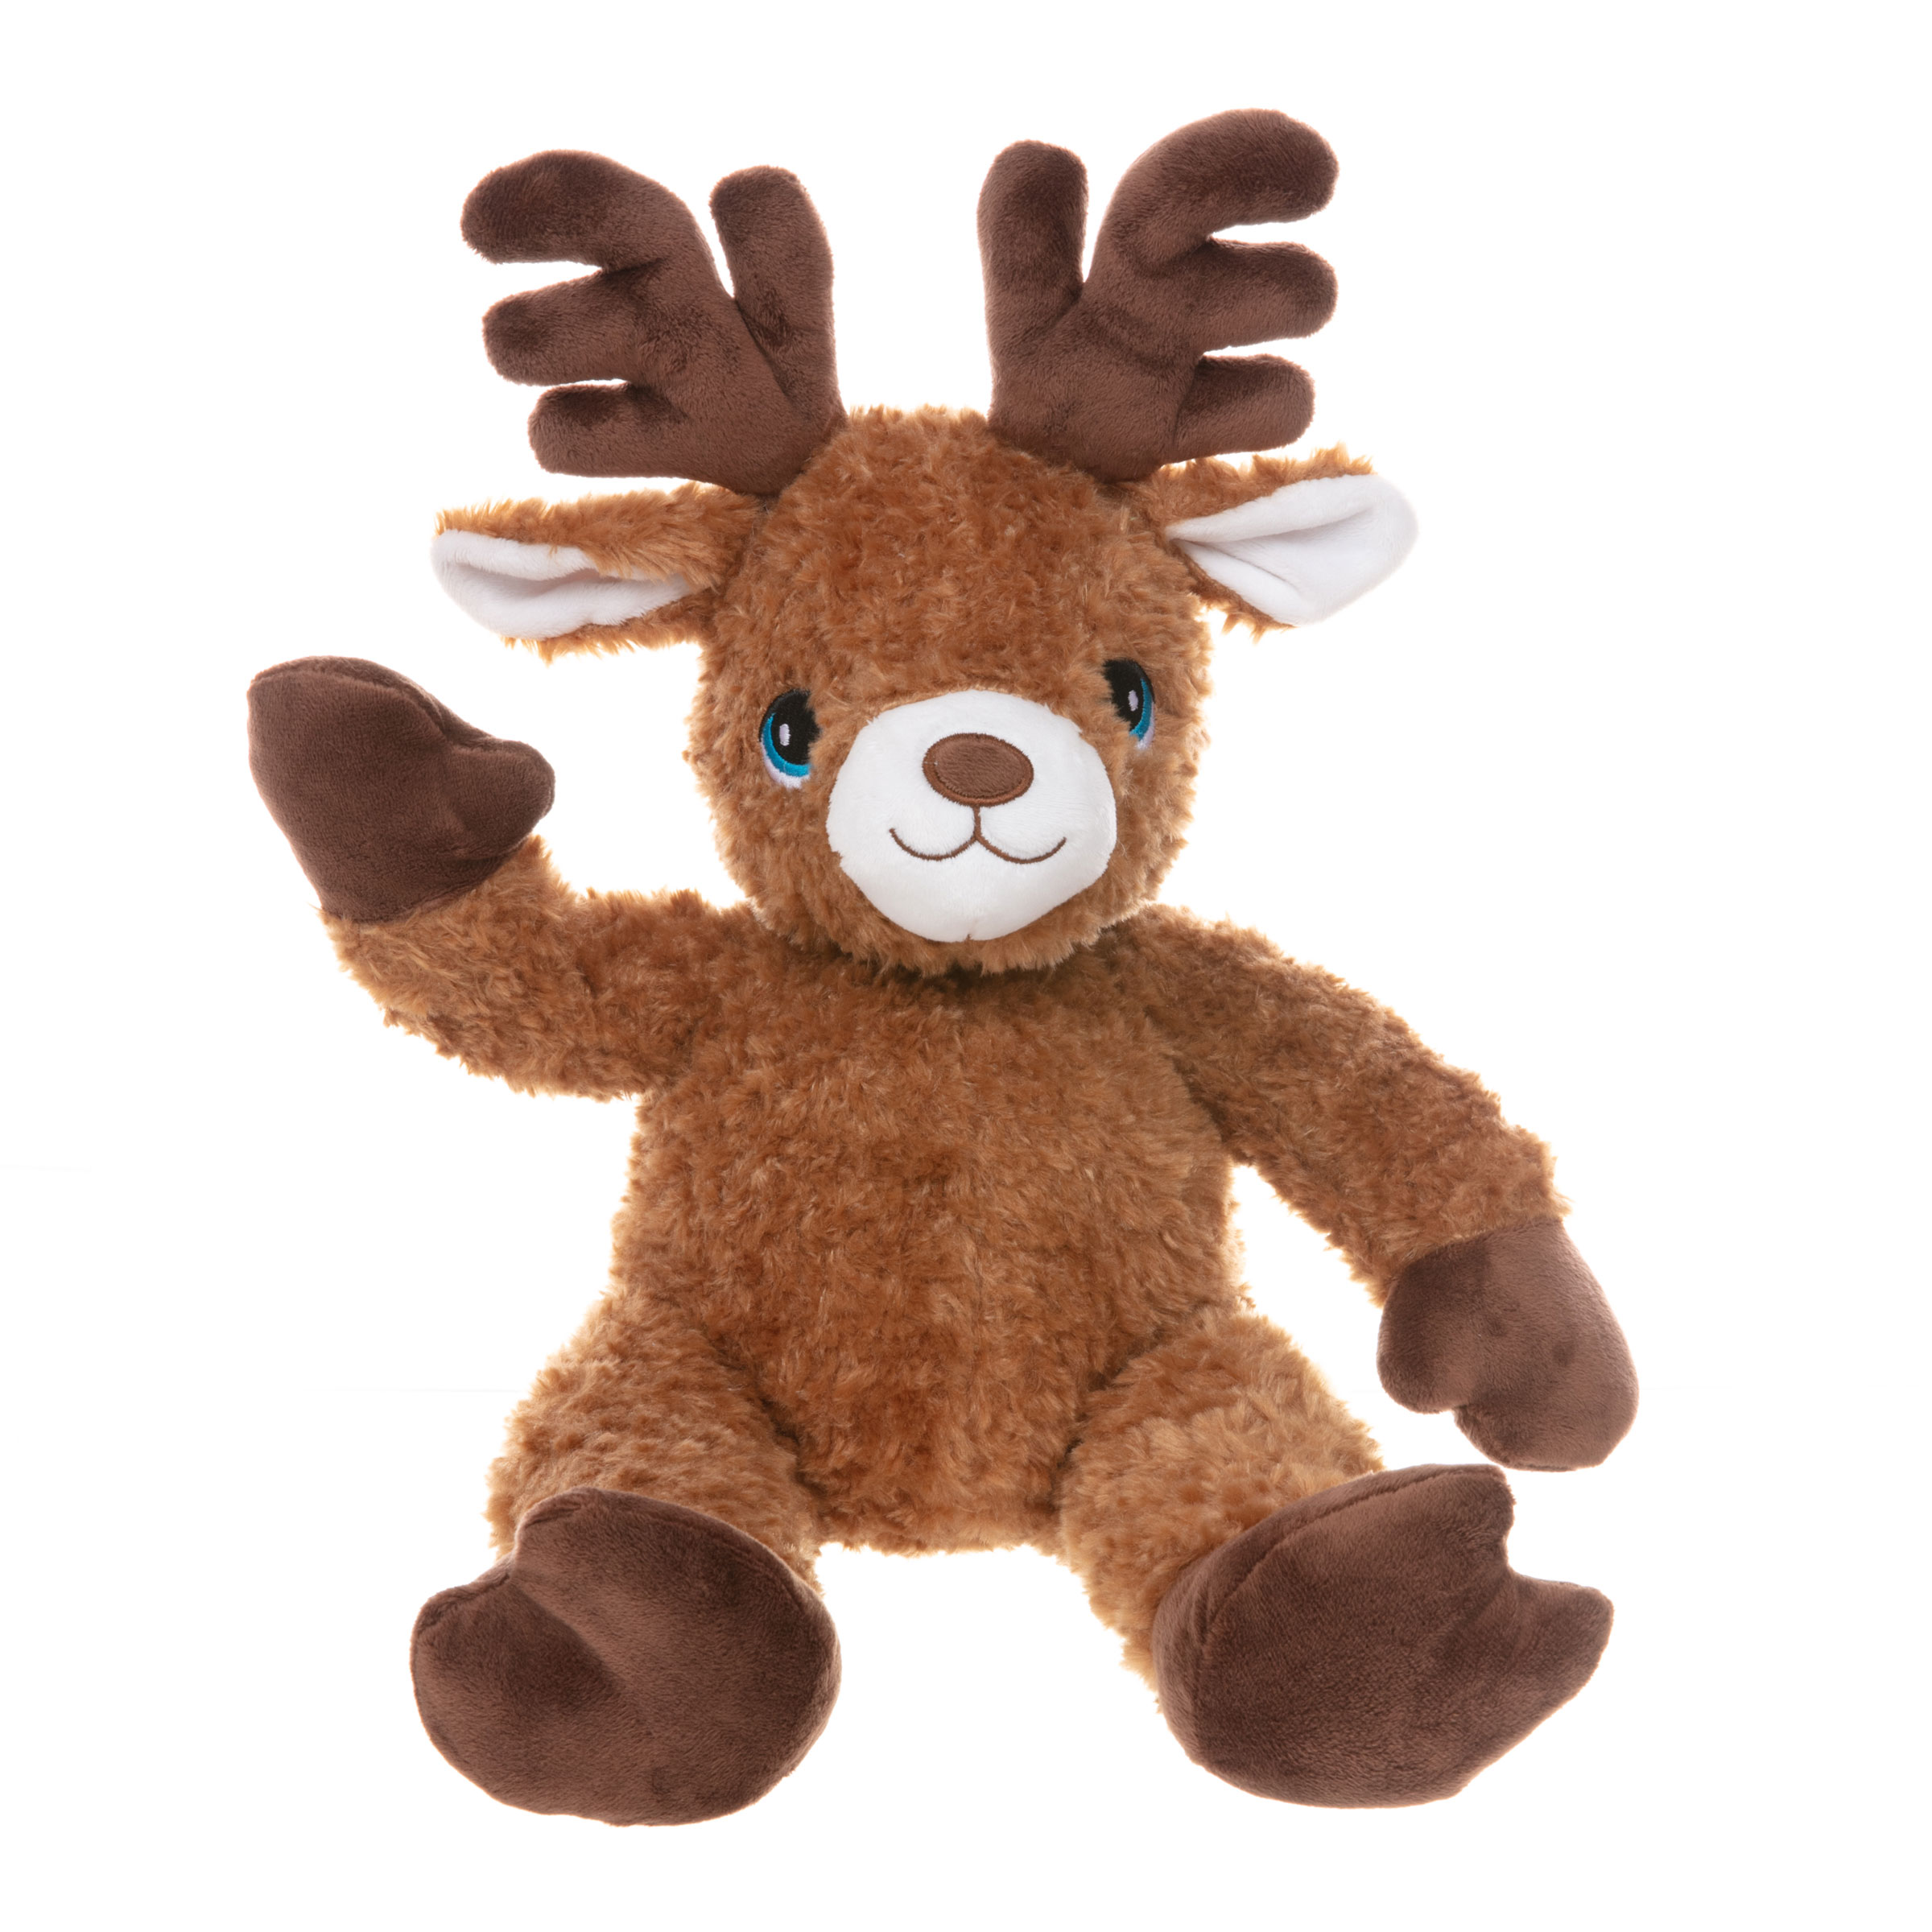 Jingles the Brown Reindeer Teddy Bear